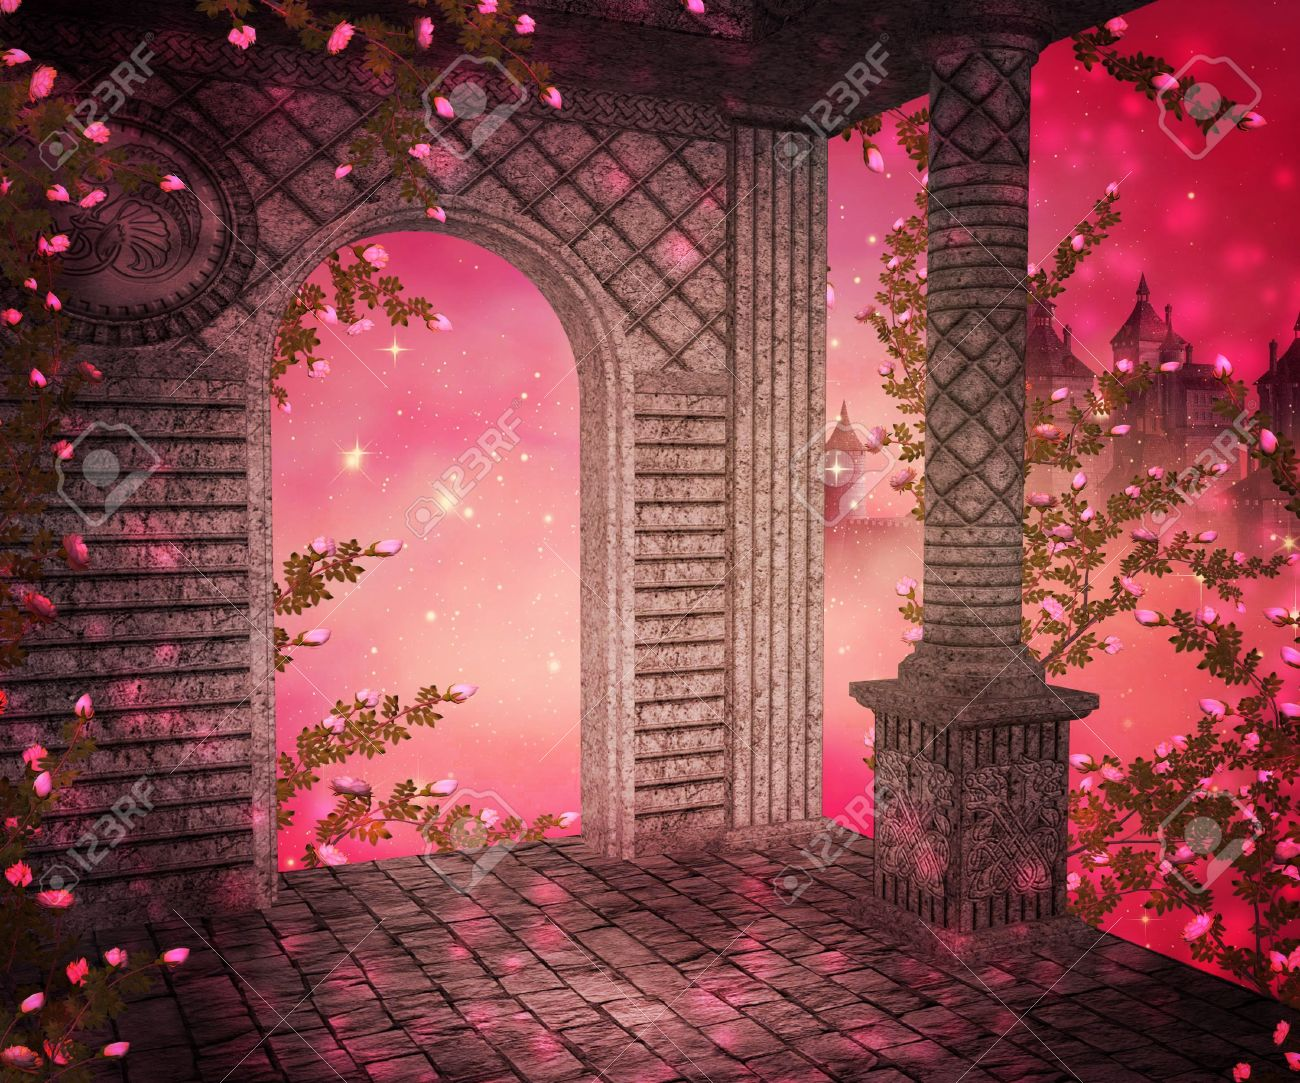 pink palace interior background stock photo, picture and royalty